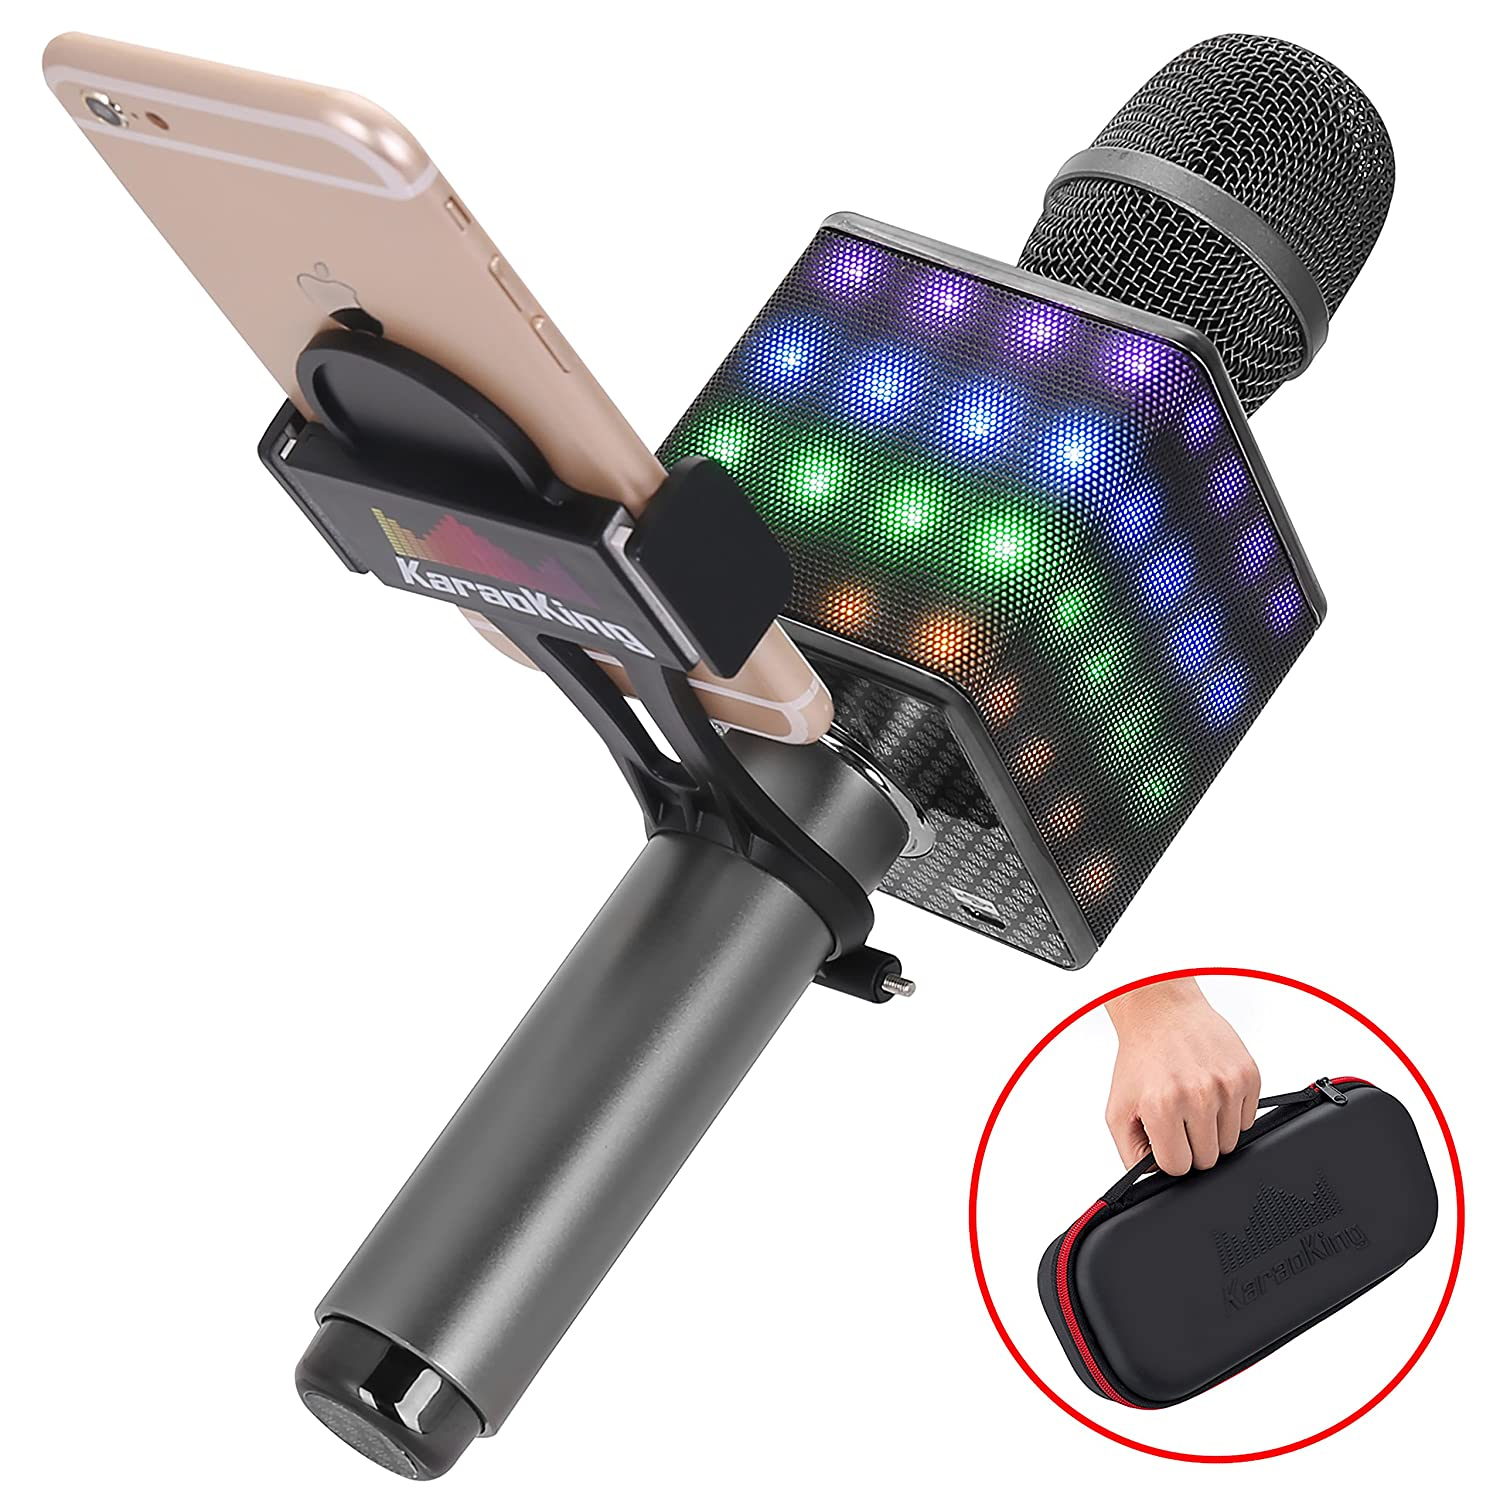 Wireless Bluetooth Karaoke Microphone - Portable KTV Karaoke Machine with Speaker, LED Lights and Bonus Phone Holder Perfect for Pop, Rock n Roll Parties, Solo Parties and More (H8 2.0 Dark Gray) KaraoKing HG1